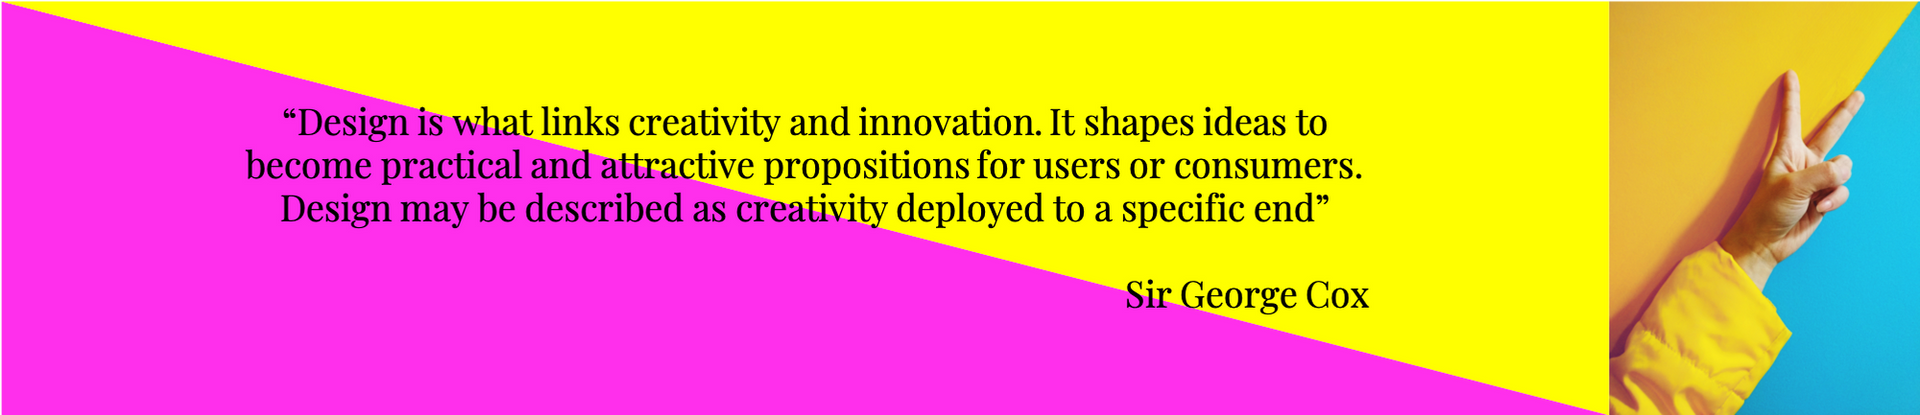 """""""Design is what links creativity and innovation. It shapes ideas to become practical and attractive propositions for users or consumers. Design may be described as creativity deployed to a specific end""""  Sir George Cox"""